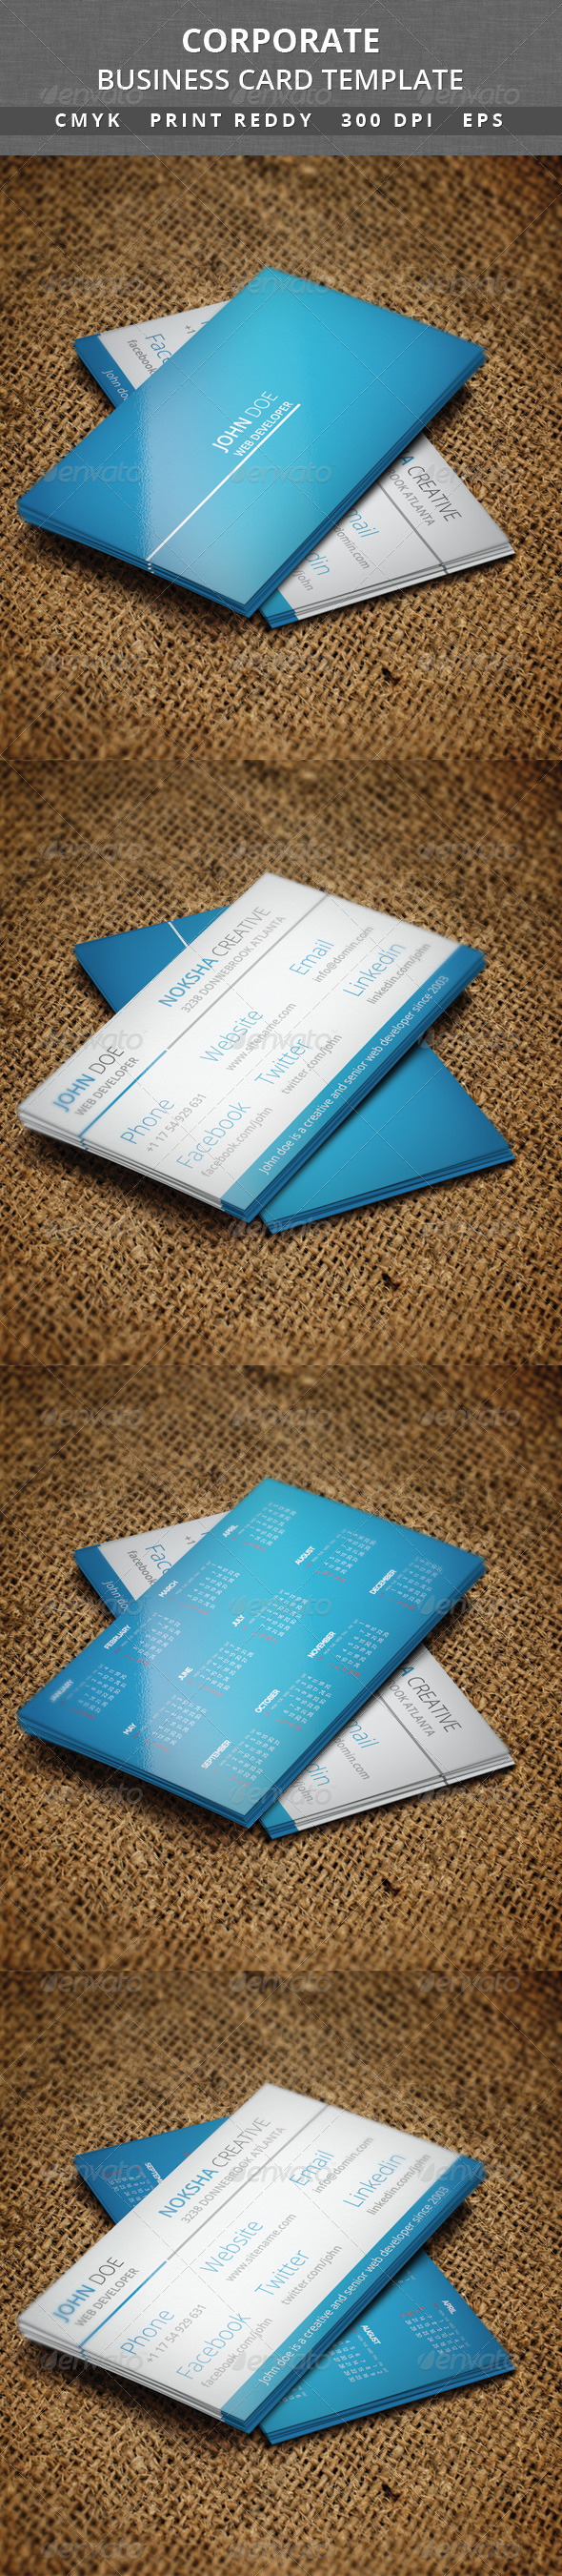 Corporate Business Card V 38 - Corporate Business Cards